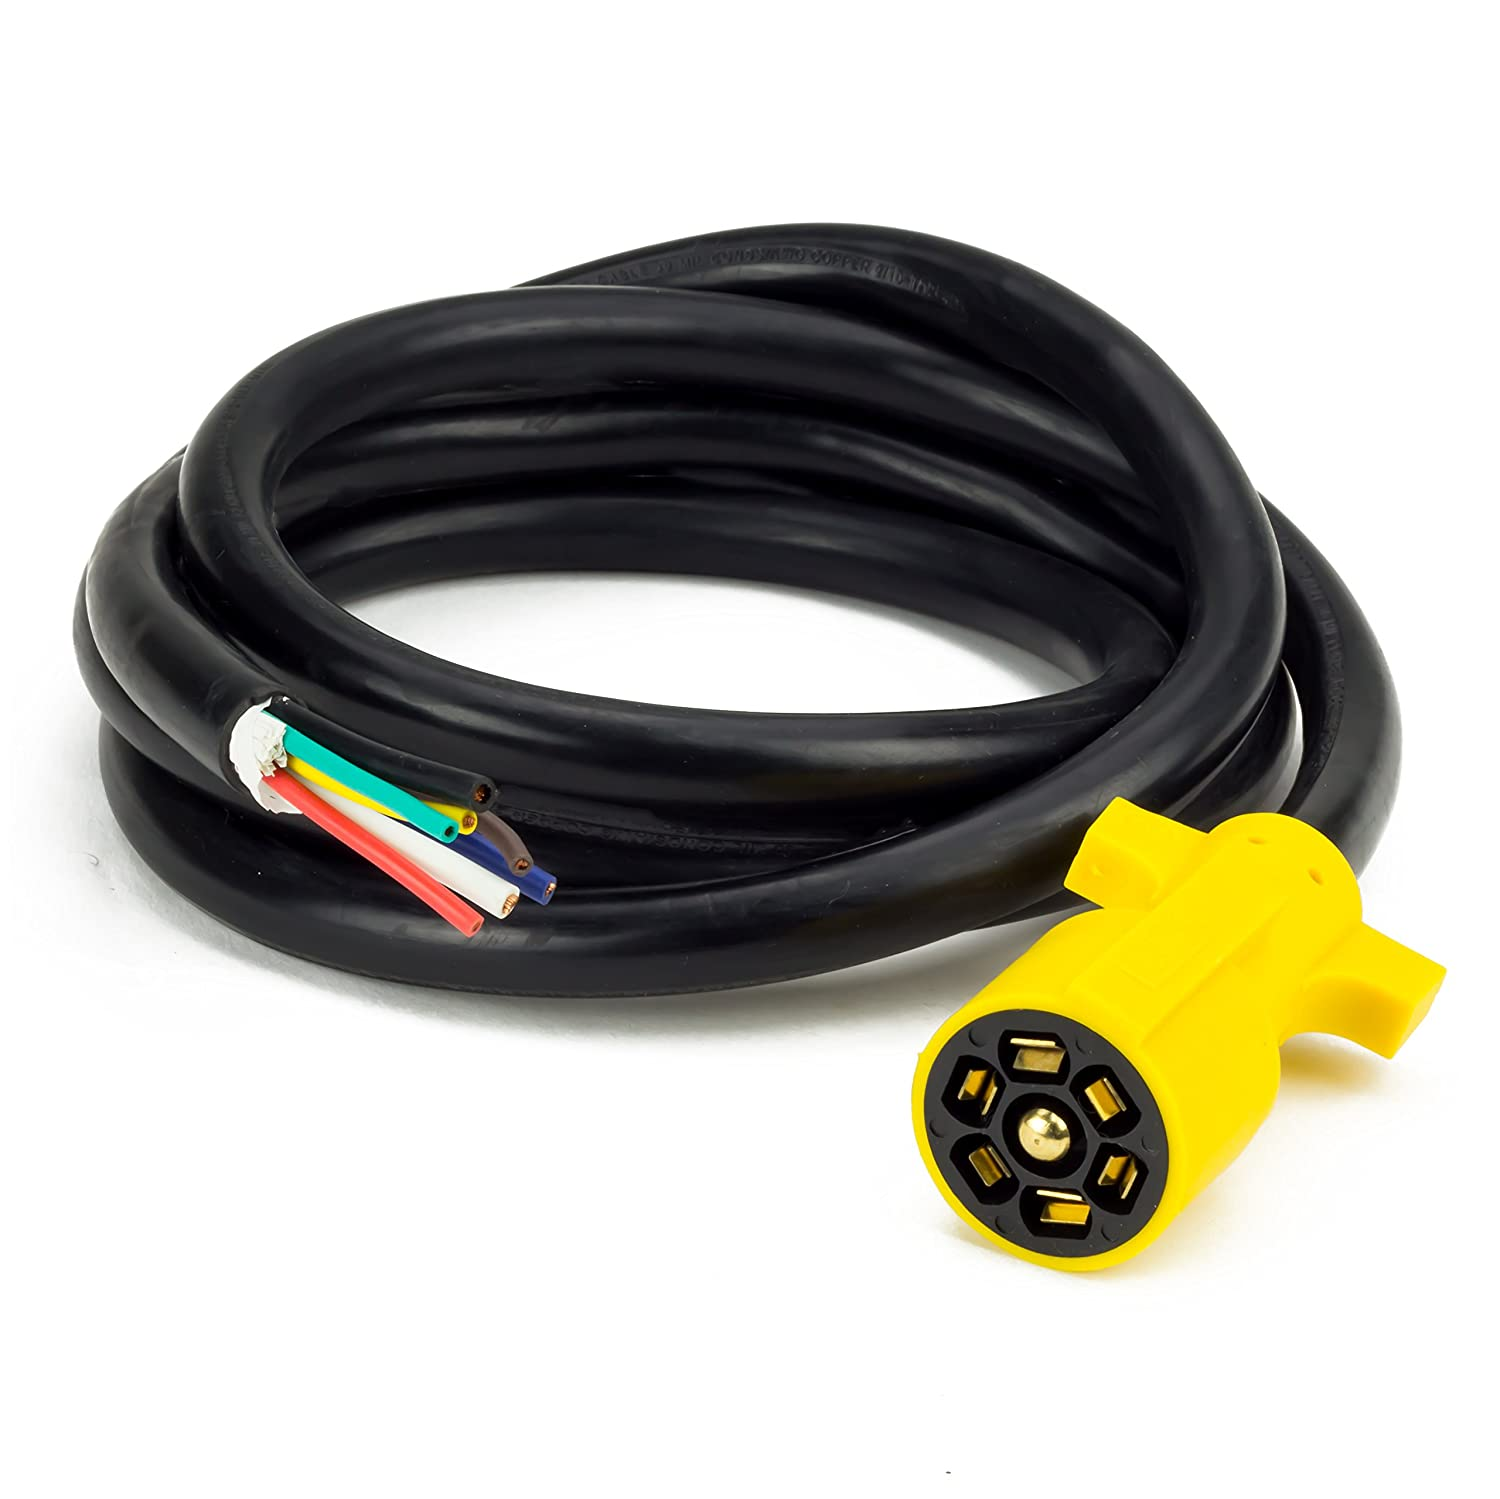 Proline Power 7 Way Plug Inline Trailer Wiring Harness 3 Prong Diagram In Addition 4 Wire To Cord Camper Truck Weatherproof And Corrosion Resistant Feet Length